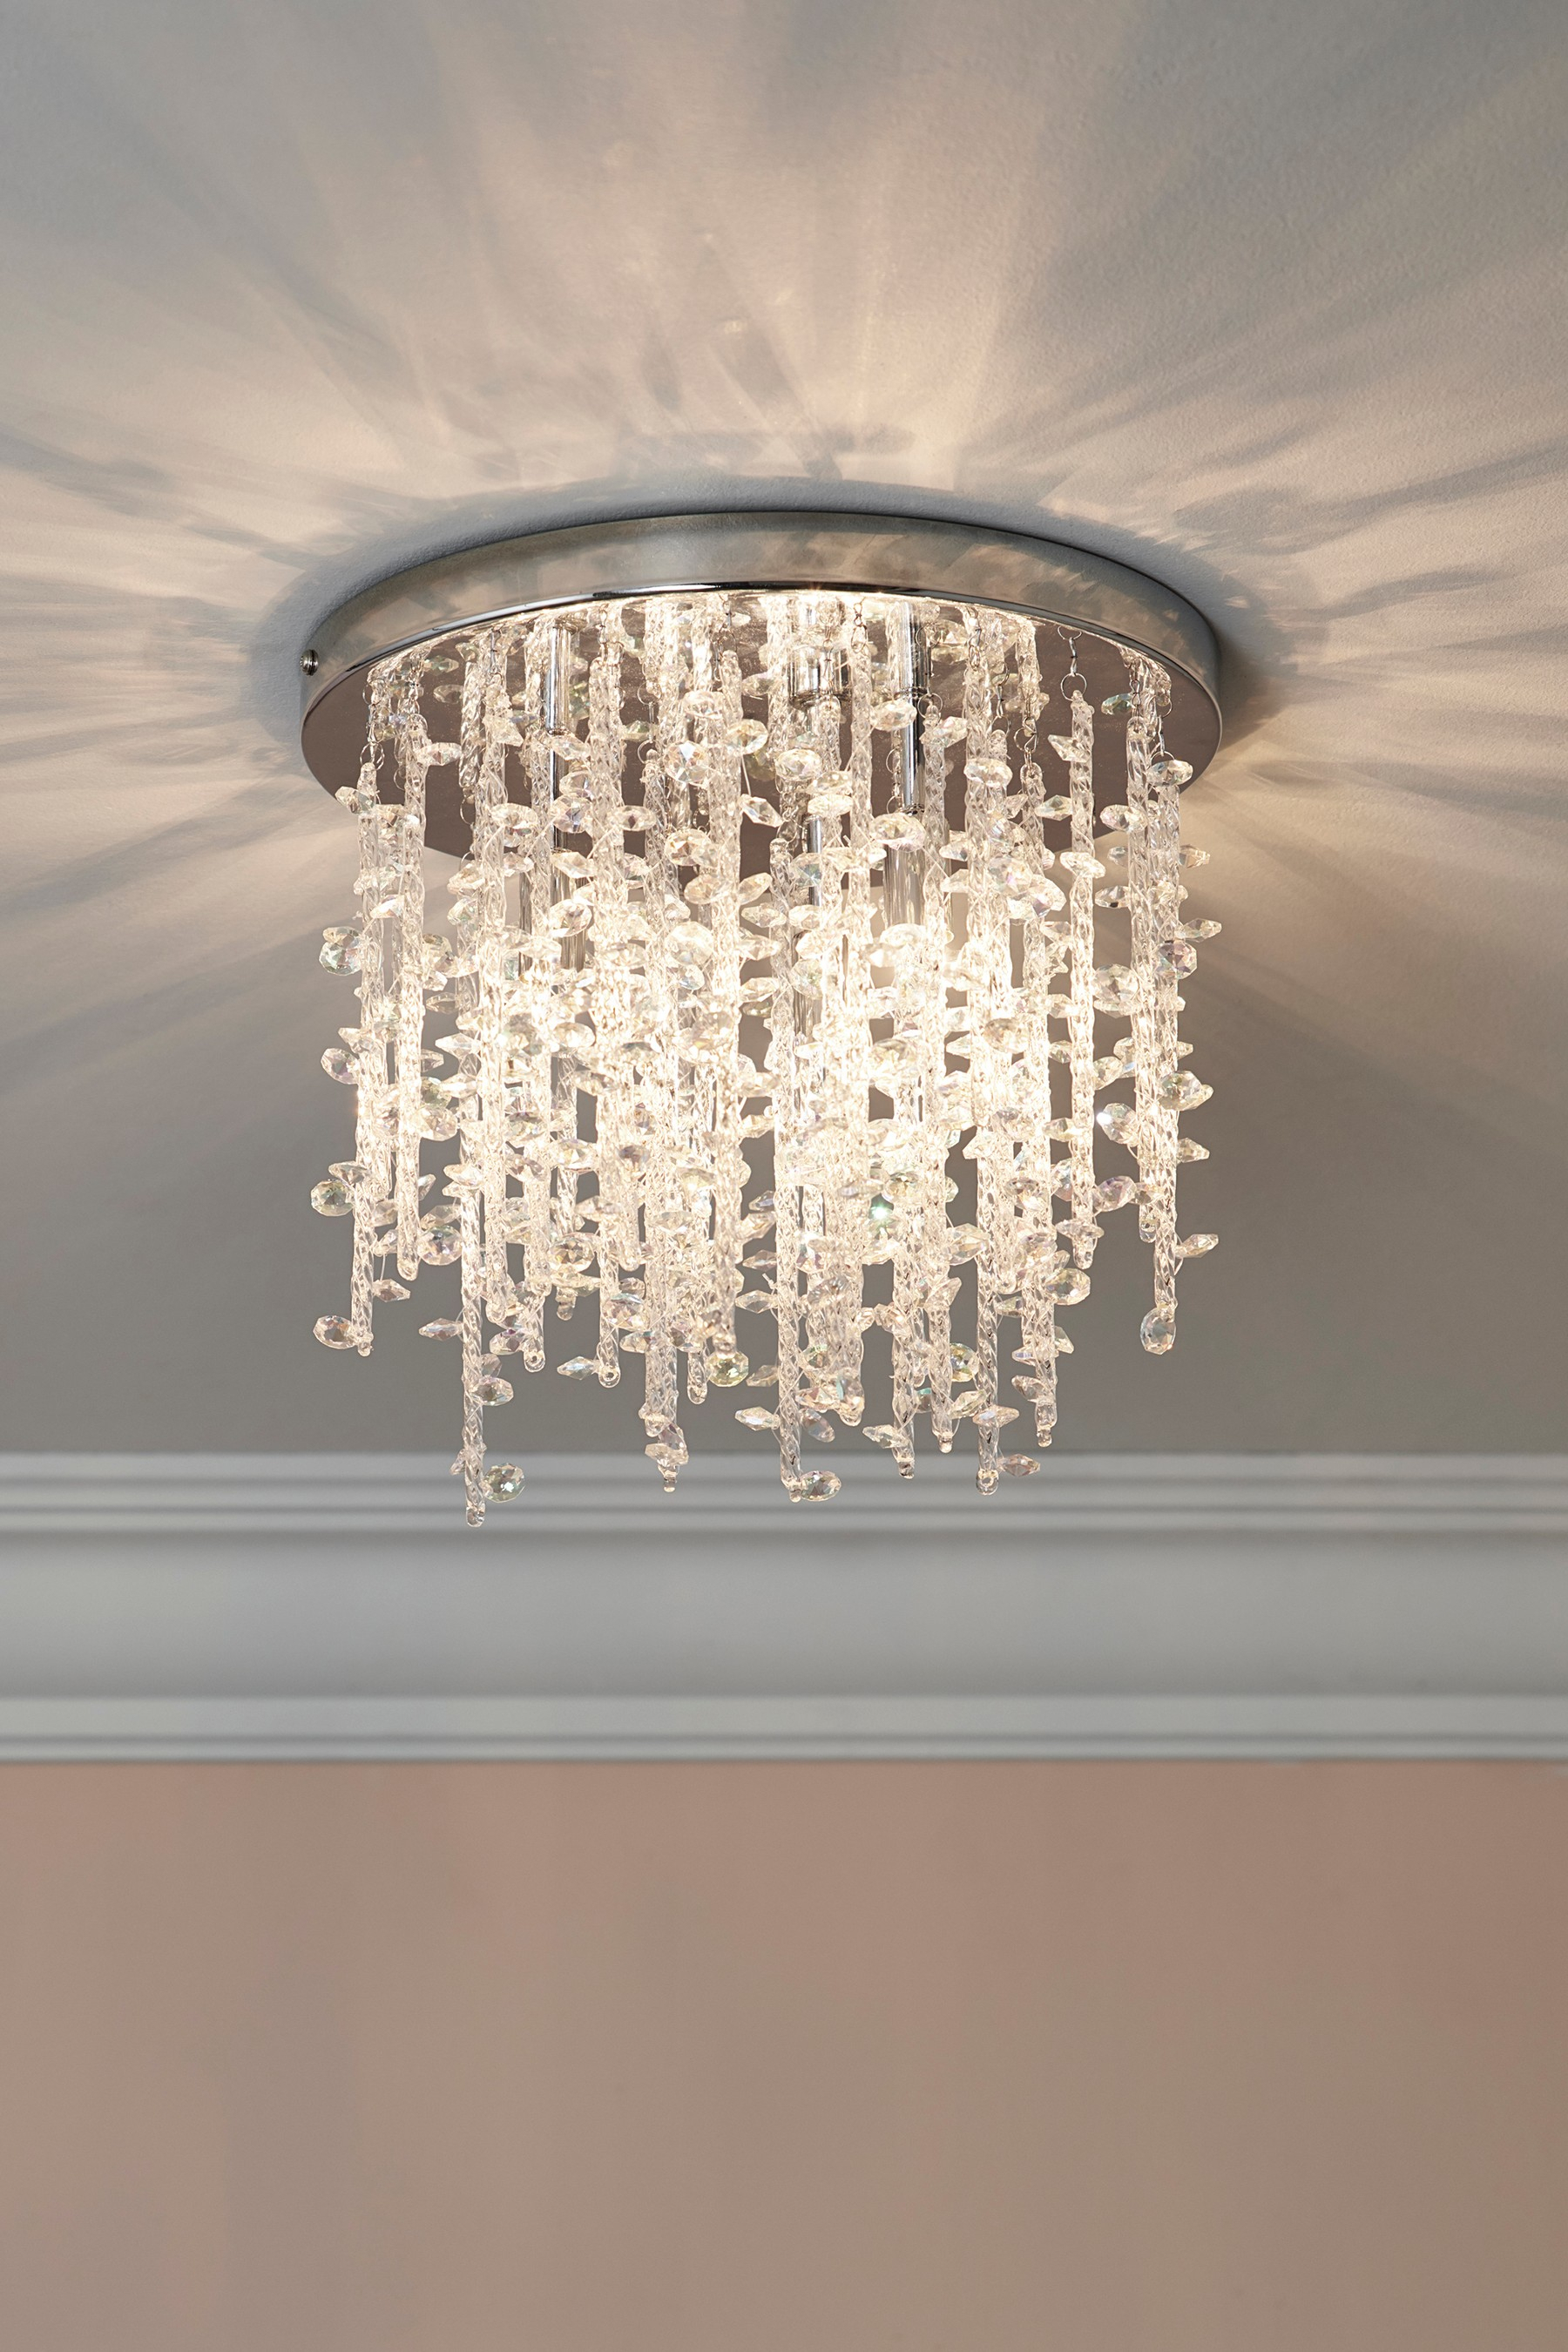 Next Icicle Flush 3 Light Fitting – Chrome | Products In Inside Jill 4 Light Drum Chandeliers (View 14 of 30)